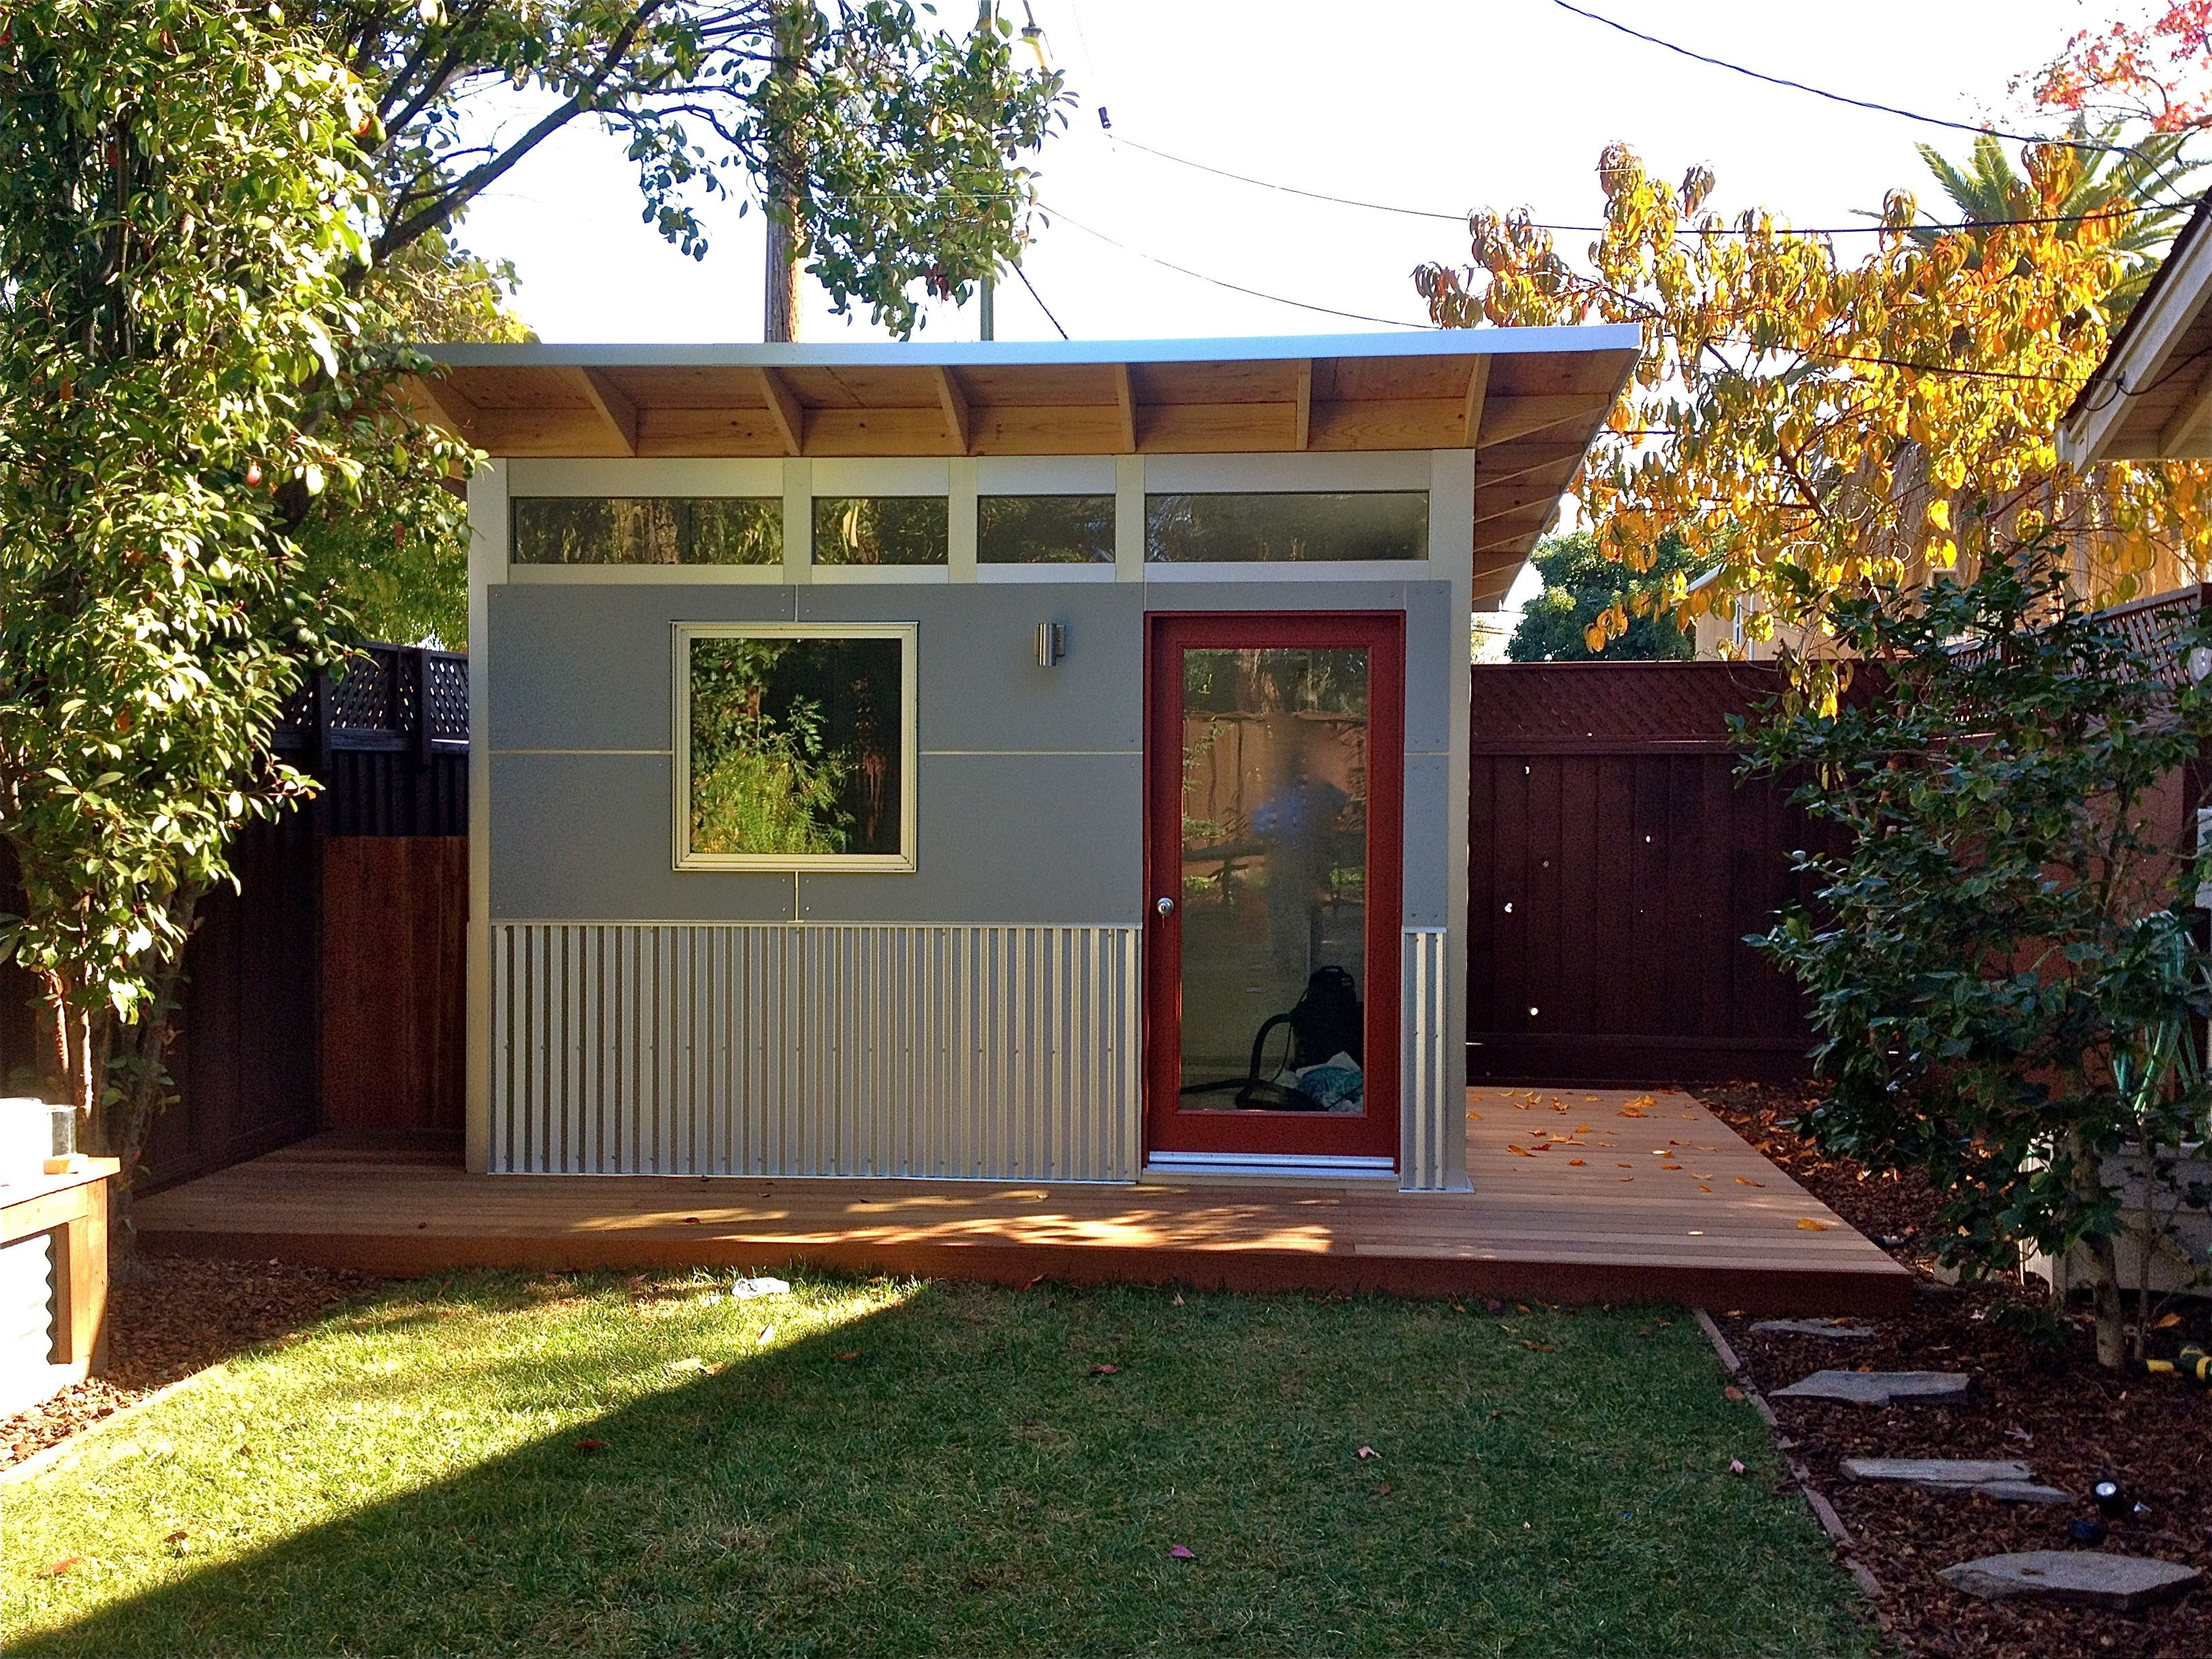 tiny backyard home office. backyard shed office wwwstudioshed a peaceful garden space moment of zen tiny home r